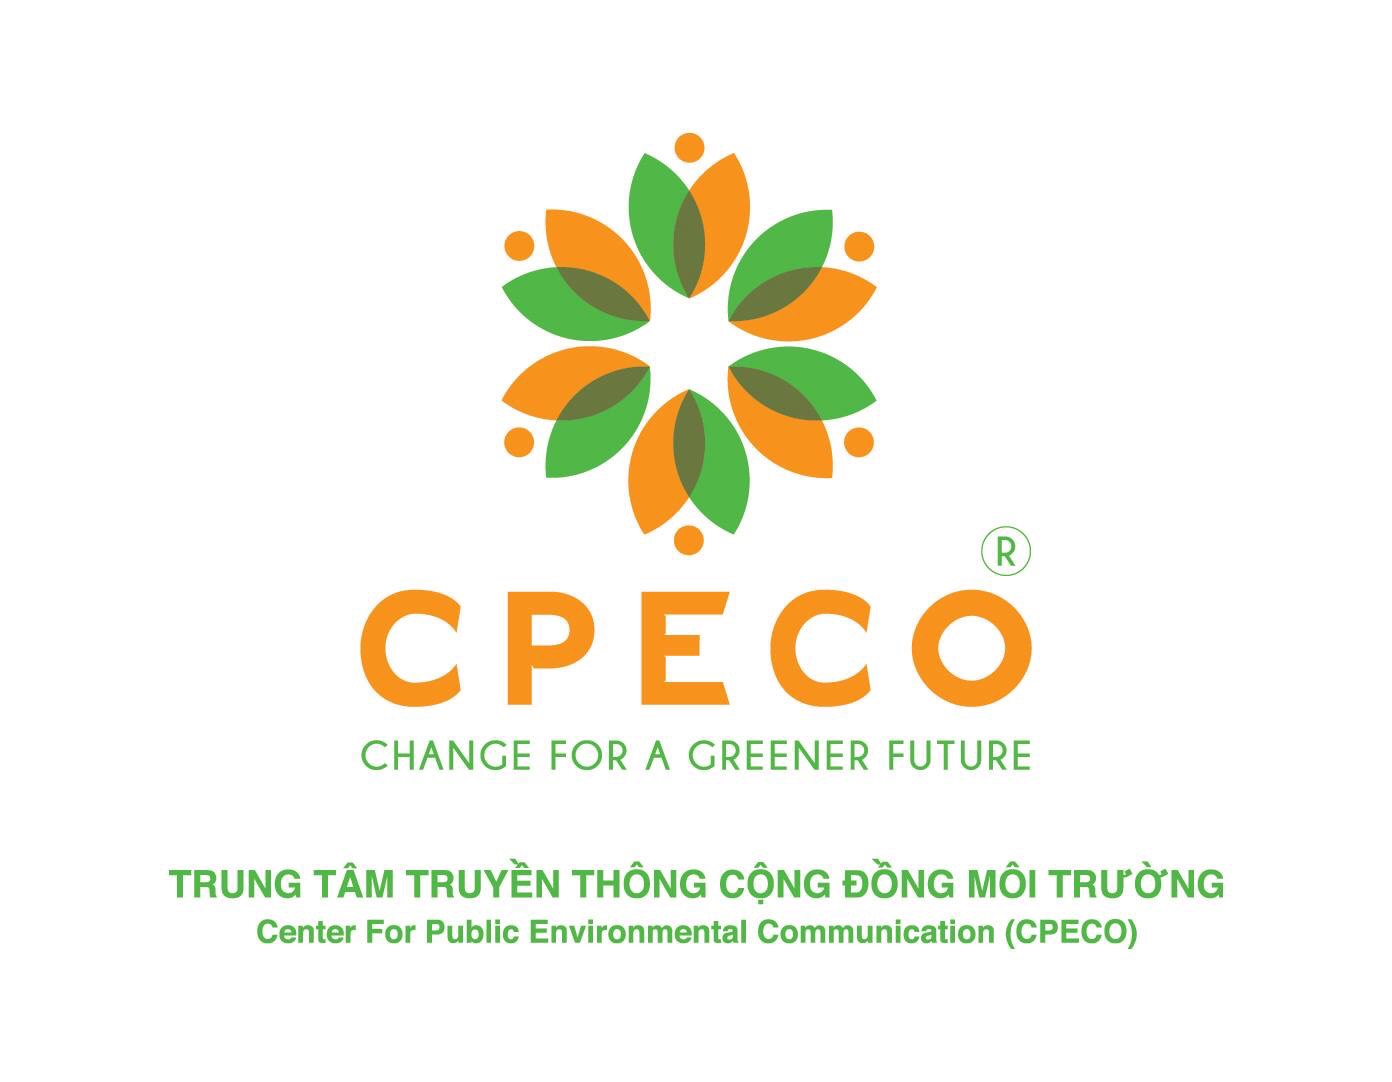 Trung tâm Truyền thông Cộng đồng Môi trường